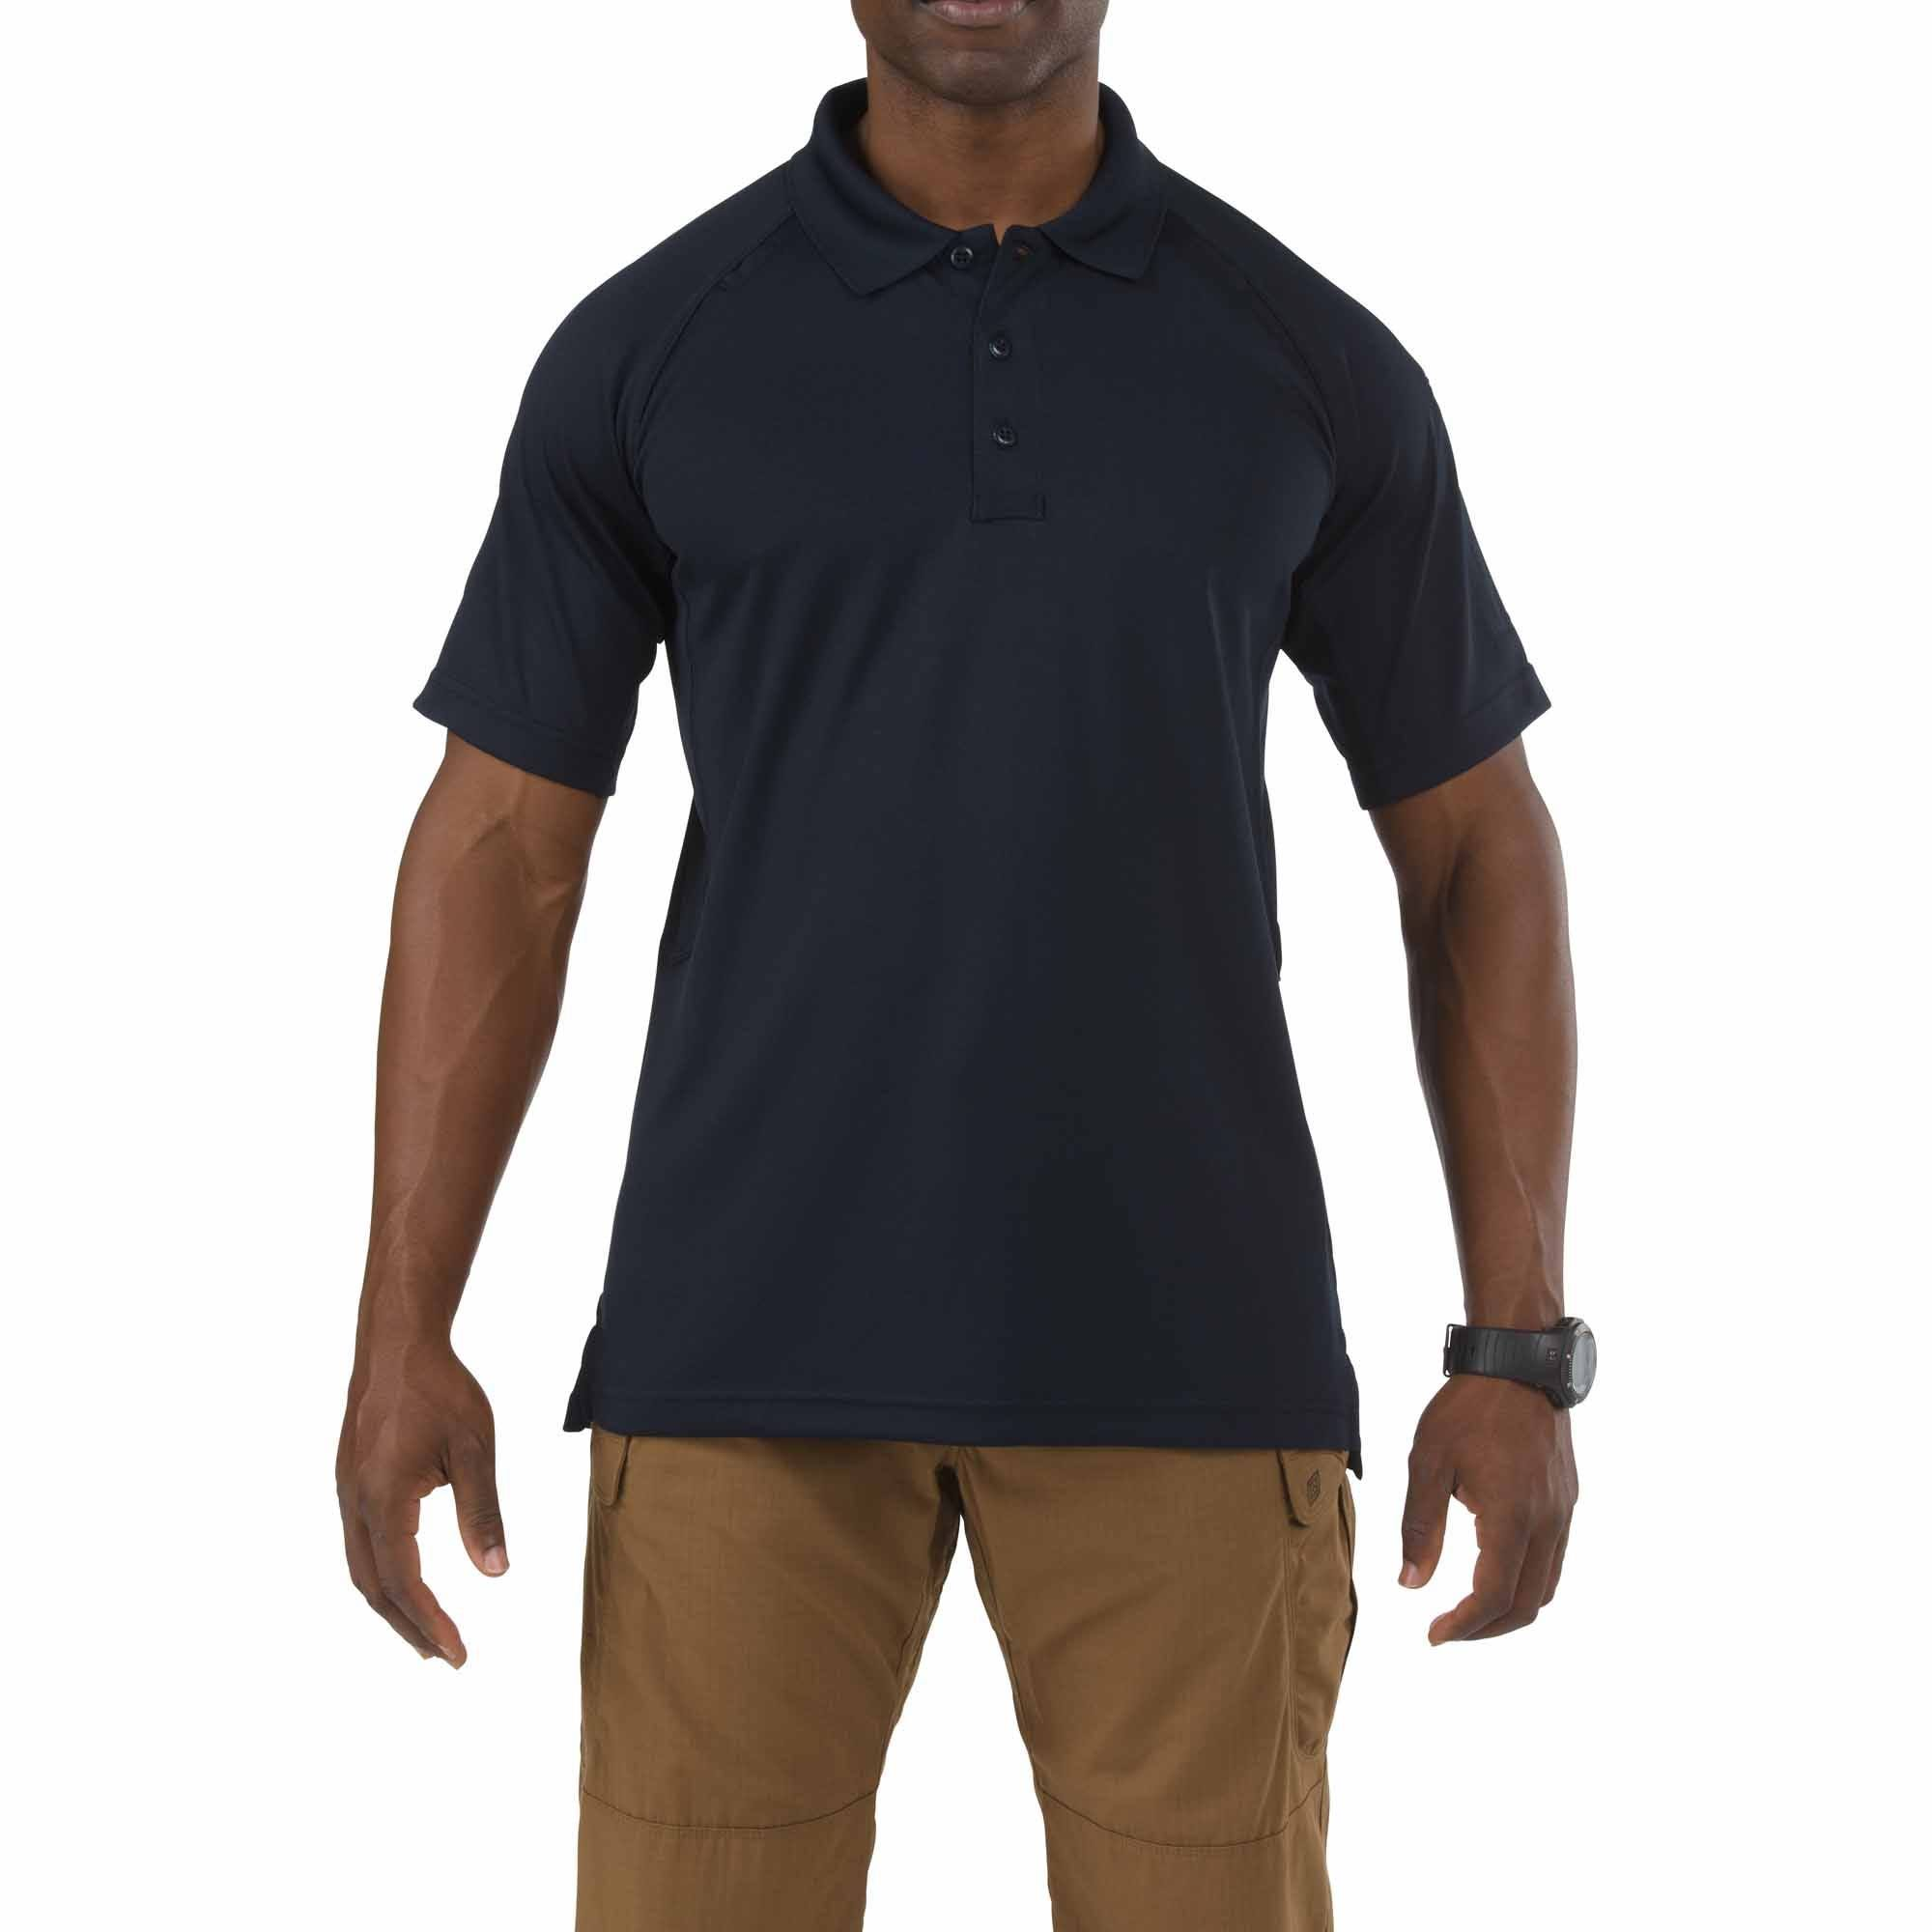 5.11 Performance Polo Short Sleeve Shirt - Dark Navy